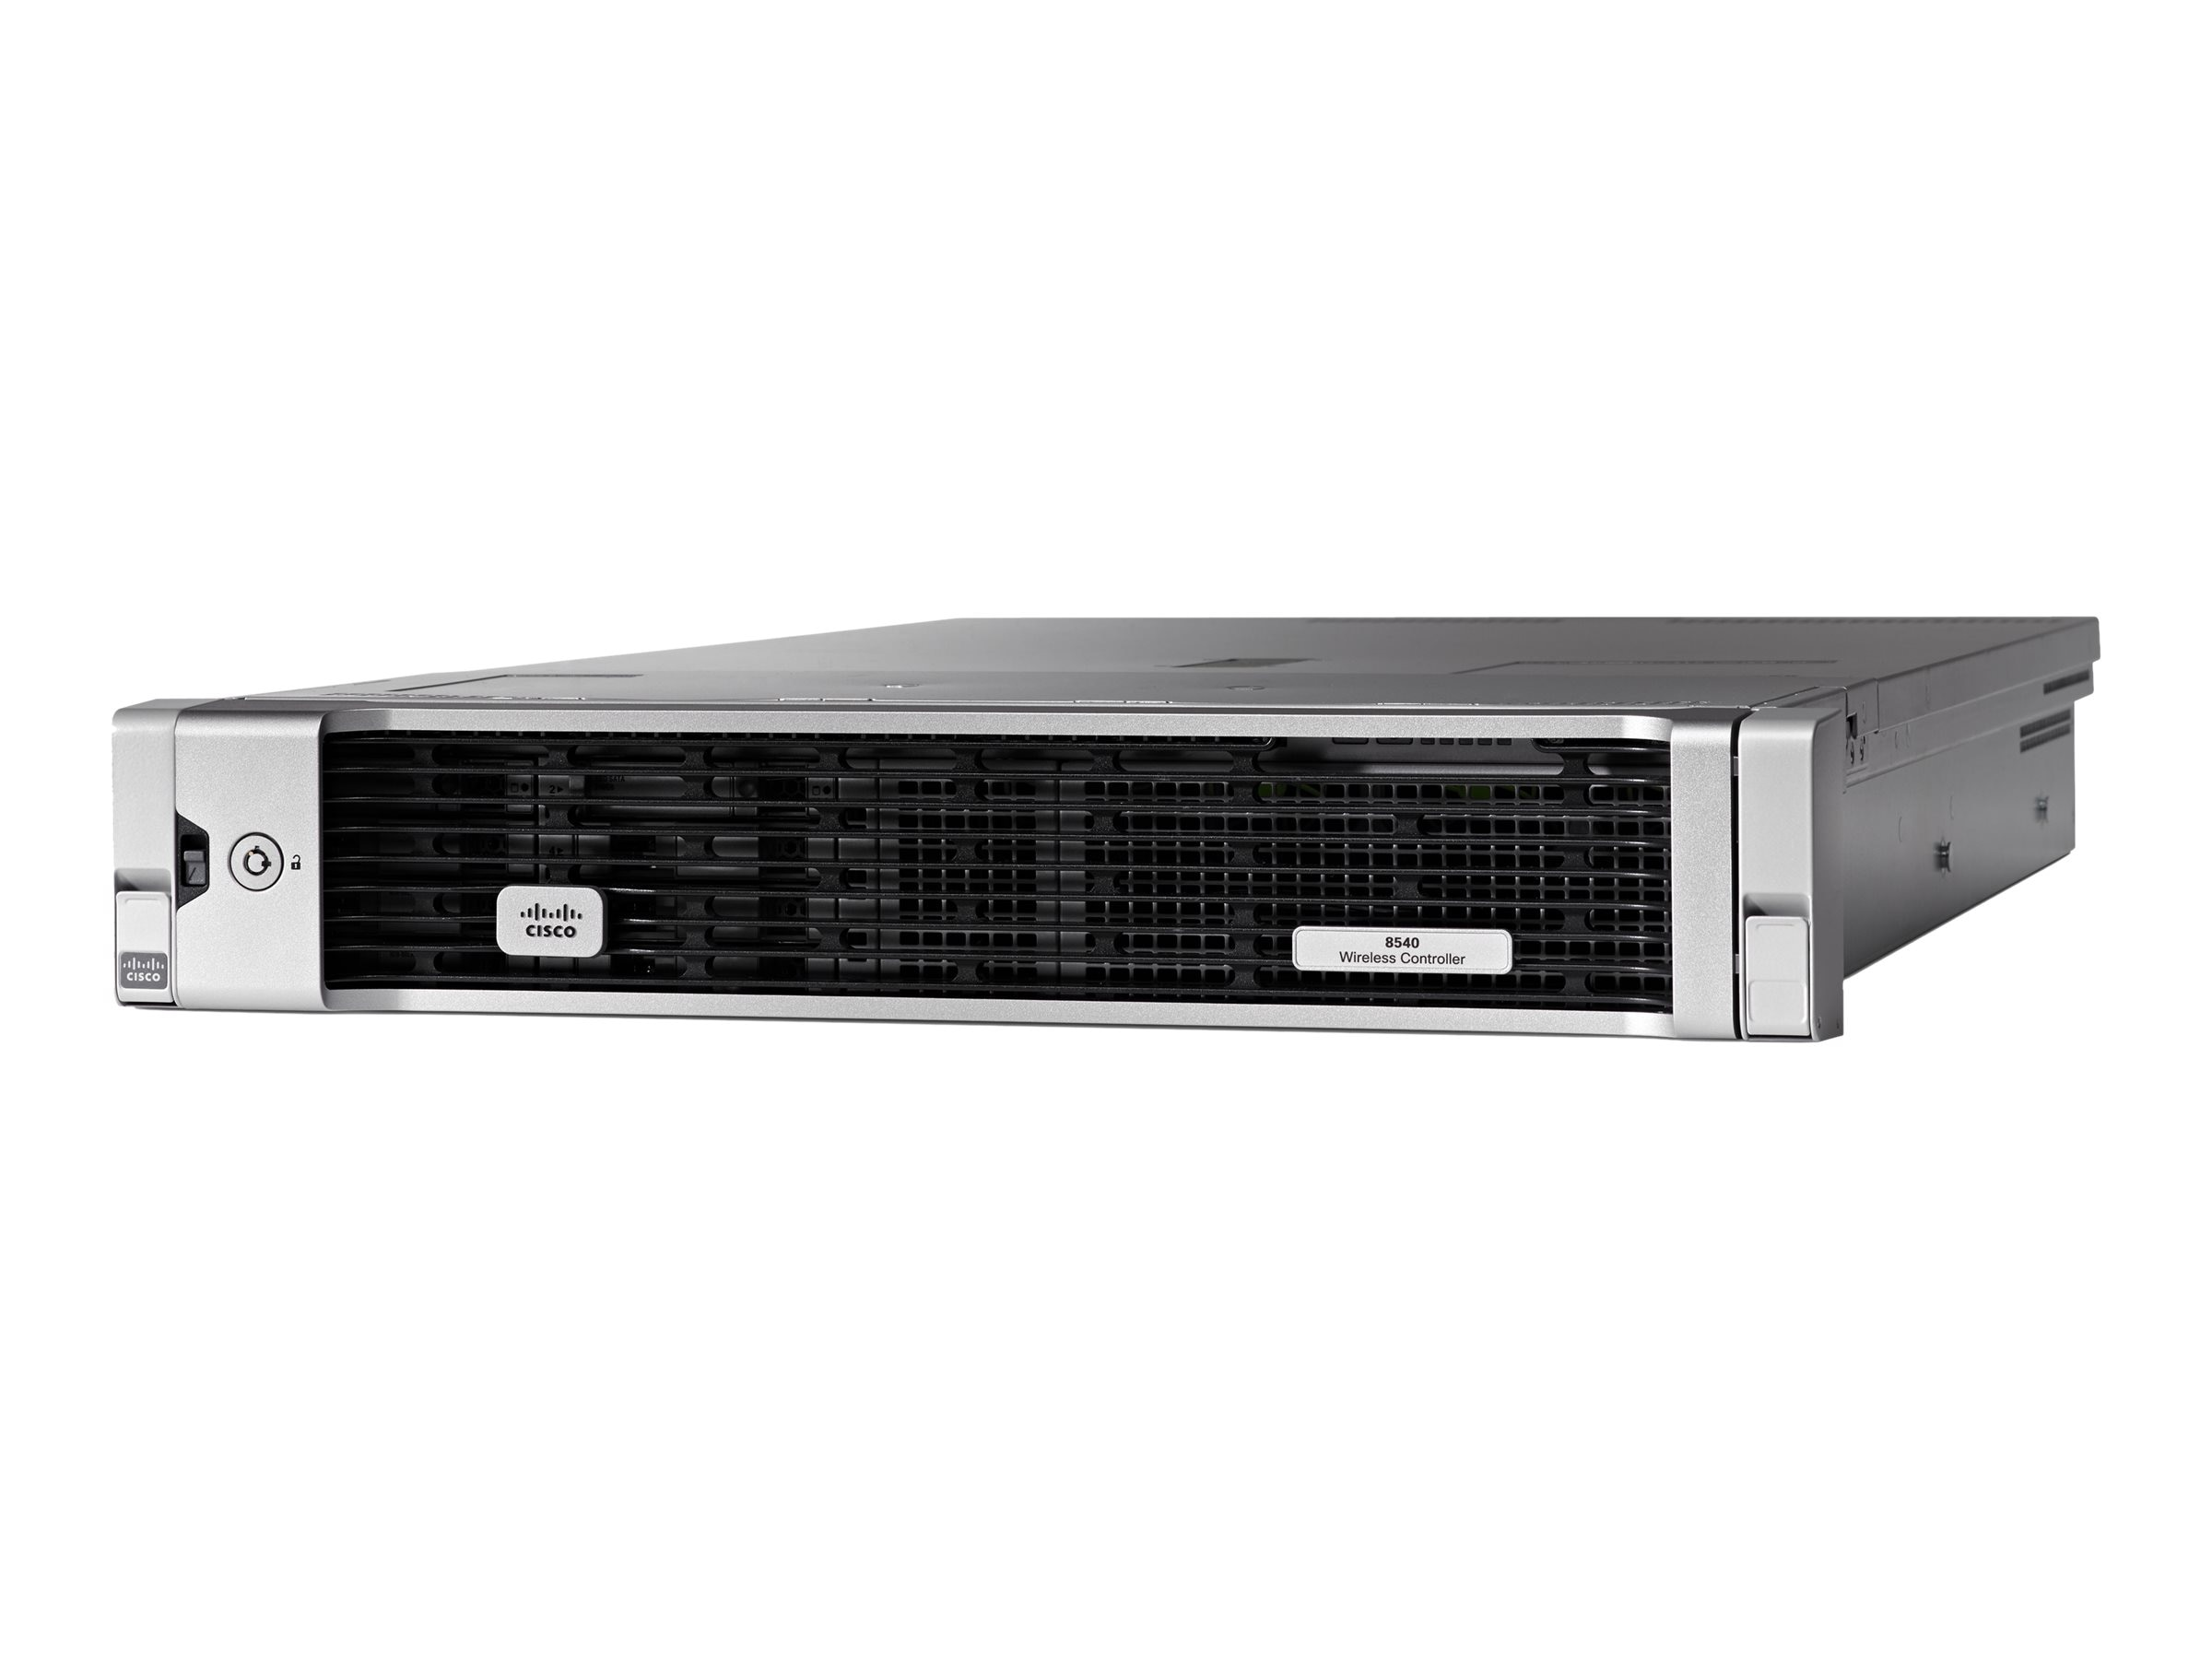 Cisco AIR-CT8540-K9 Image 1